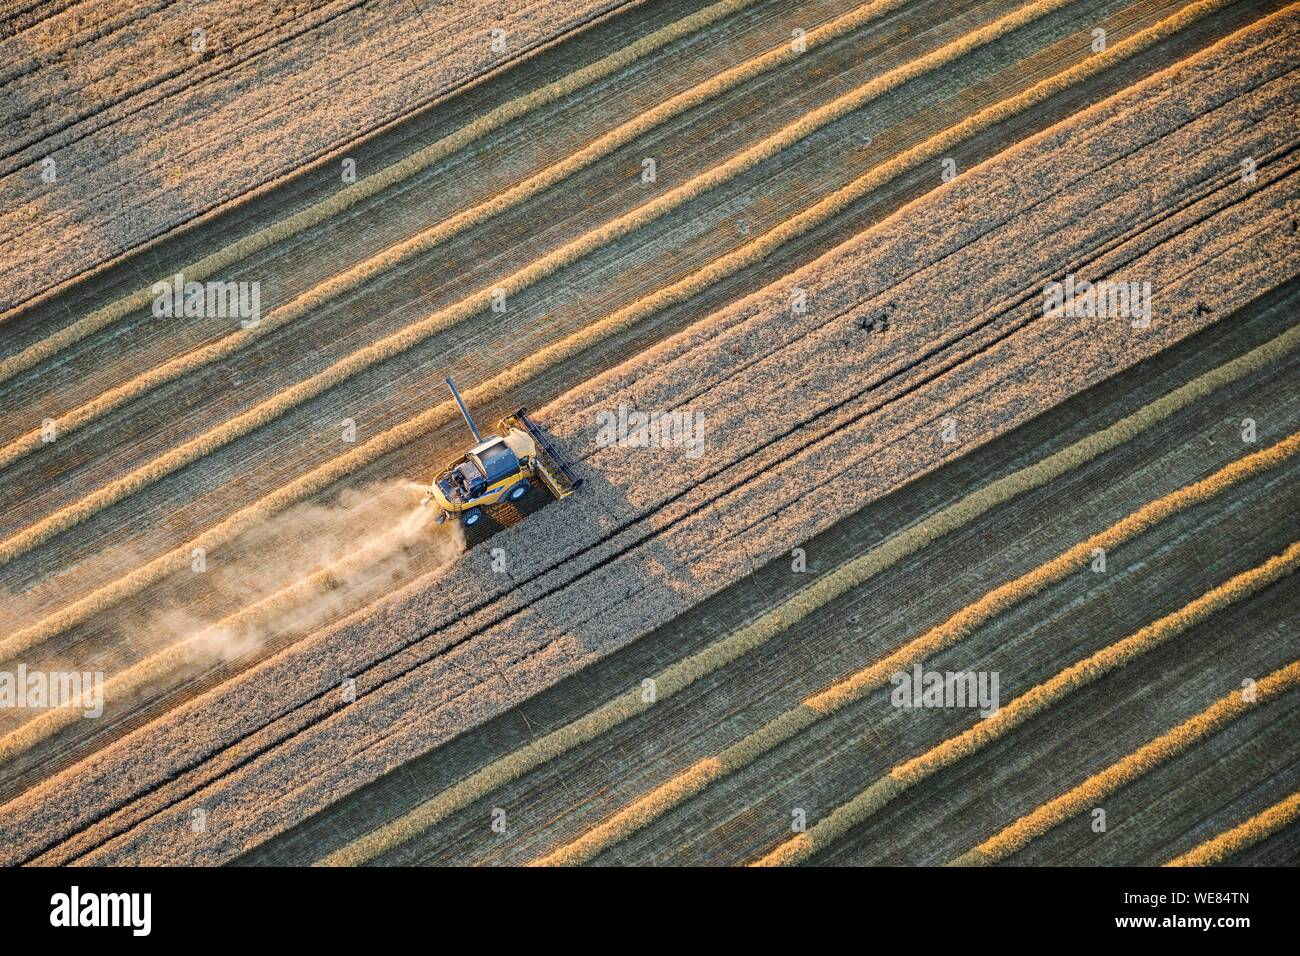 France, Haut Rhin, Sundgau, harvest (aerial view) Stock Photo